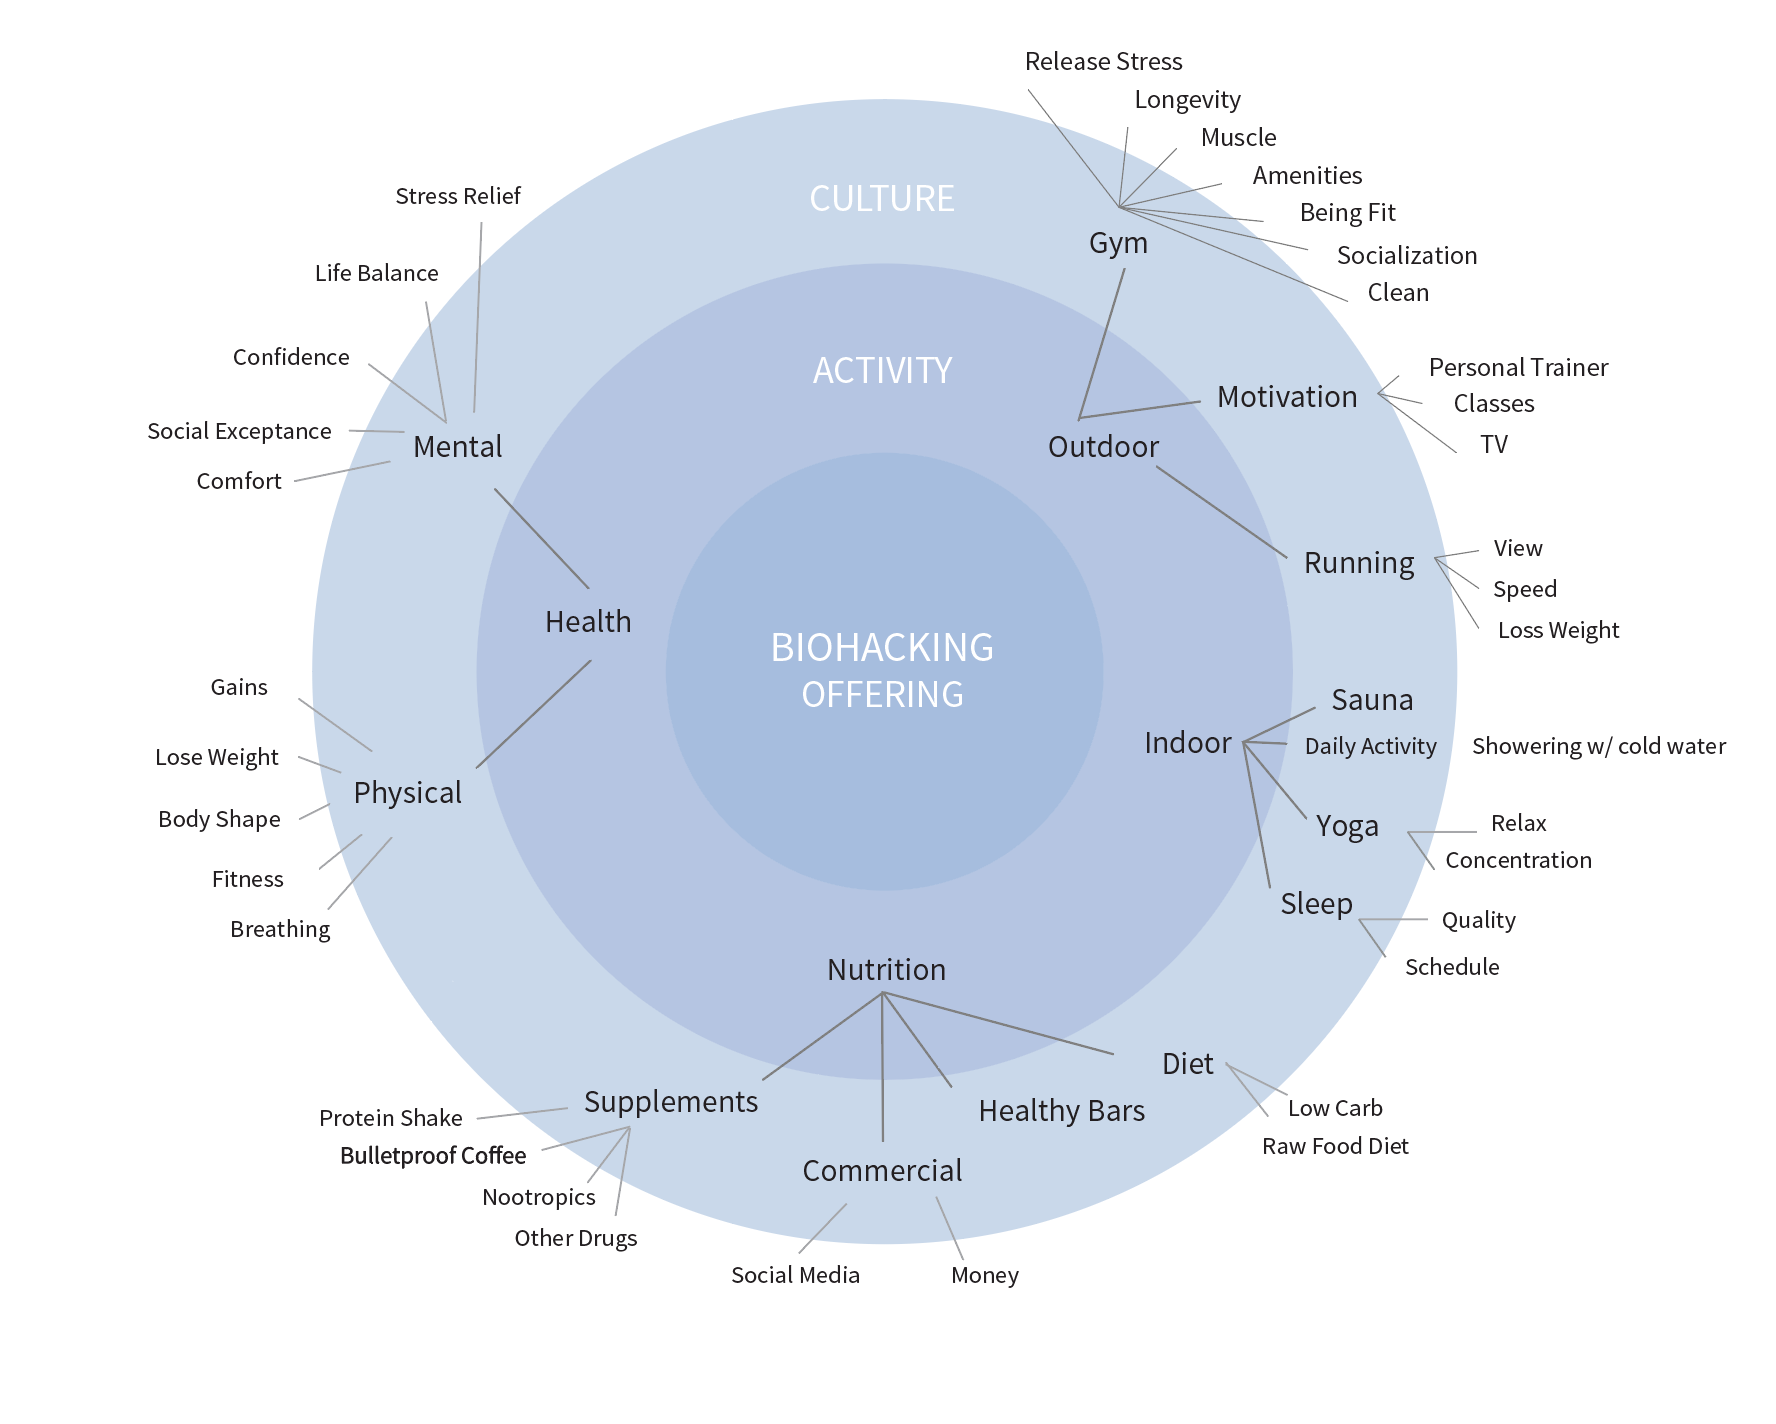 OFFERING-ACTIVITY-CULTURE MAP